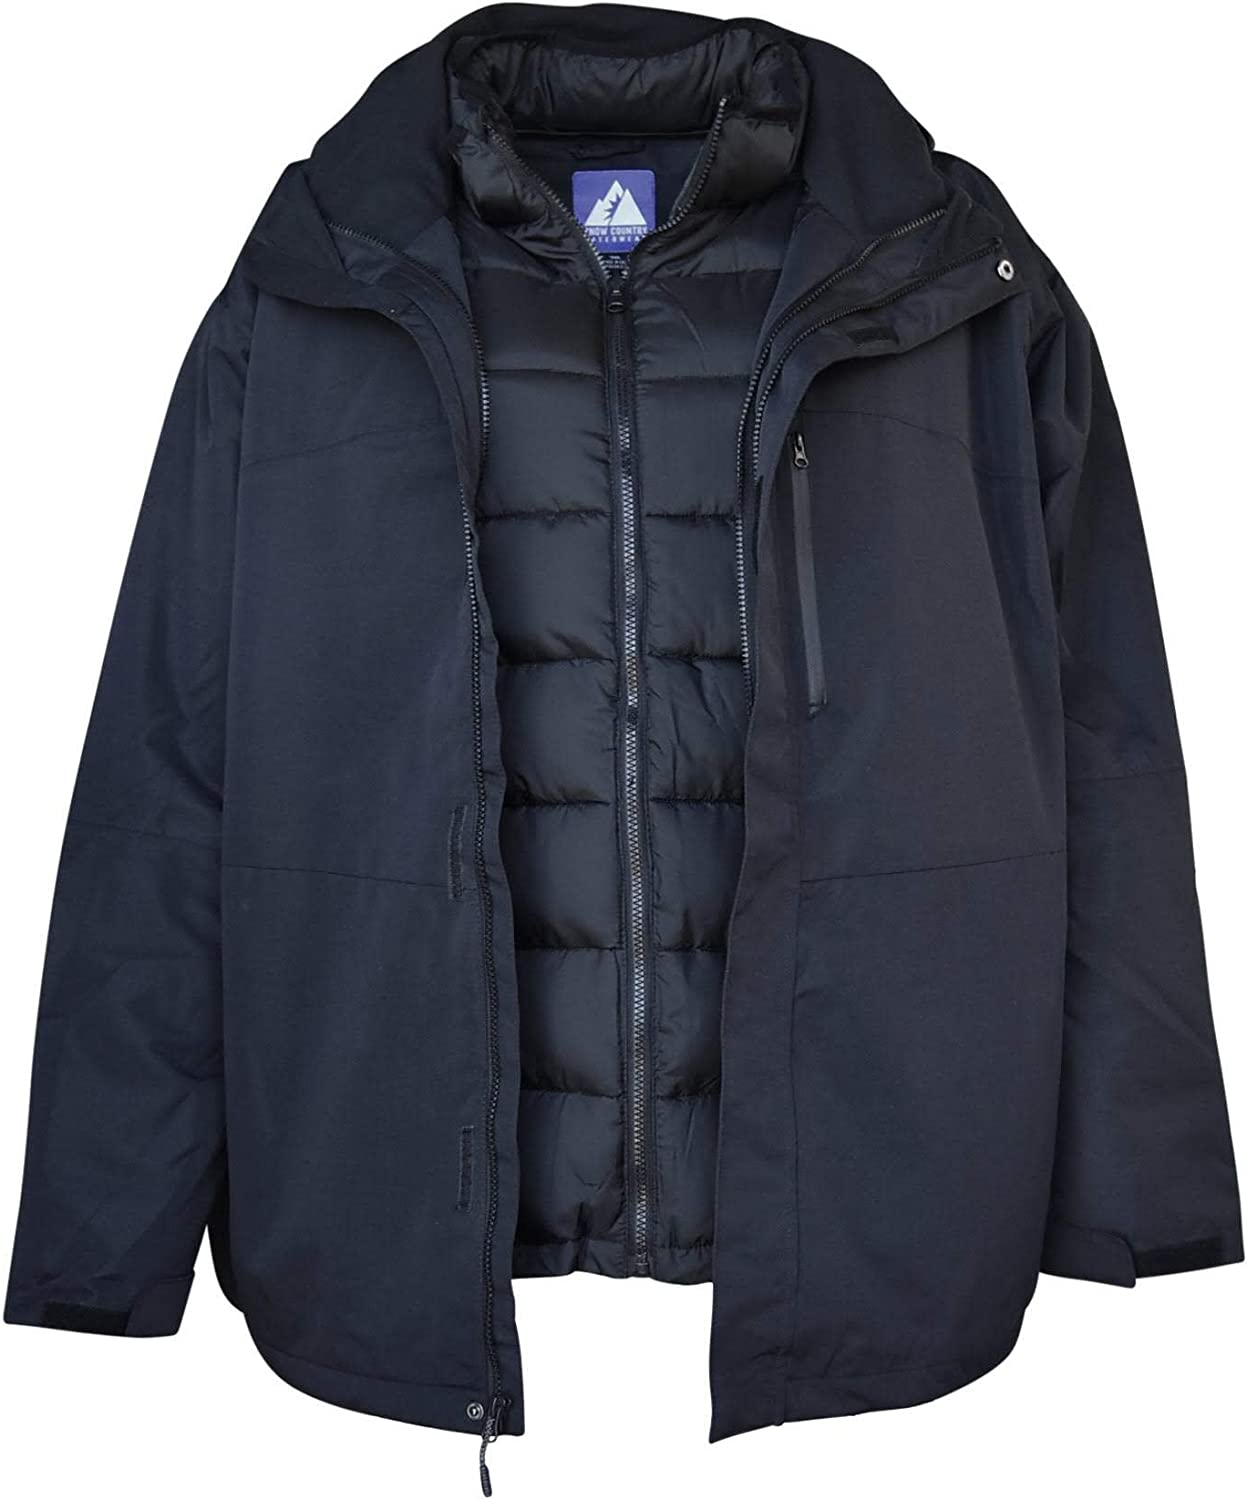 Snow Country Outerwear Mens 3in1 Burlington Jacket Coat Big Sizes